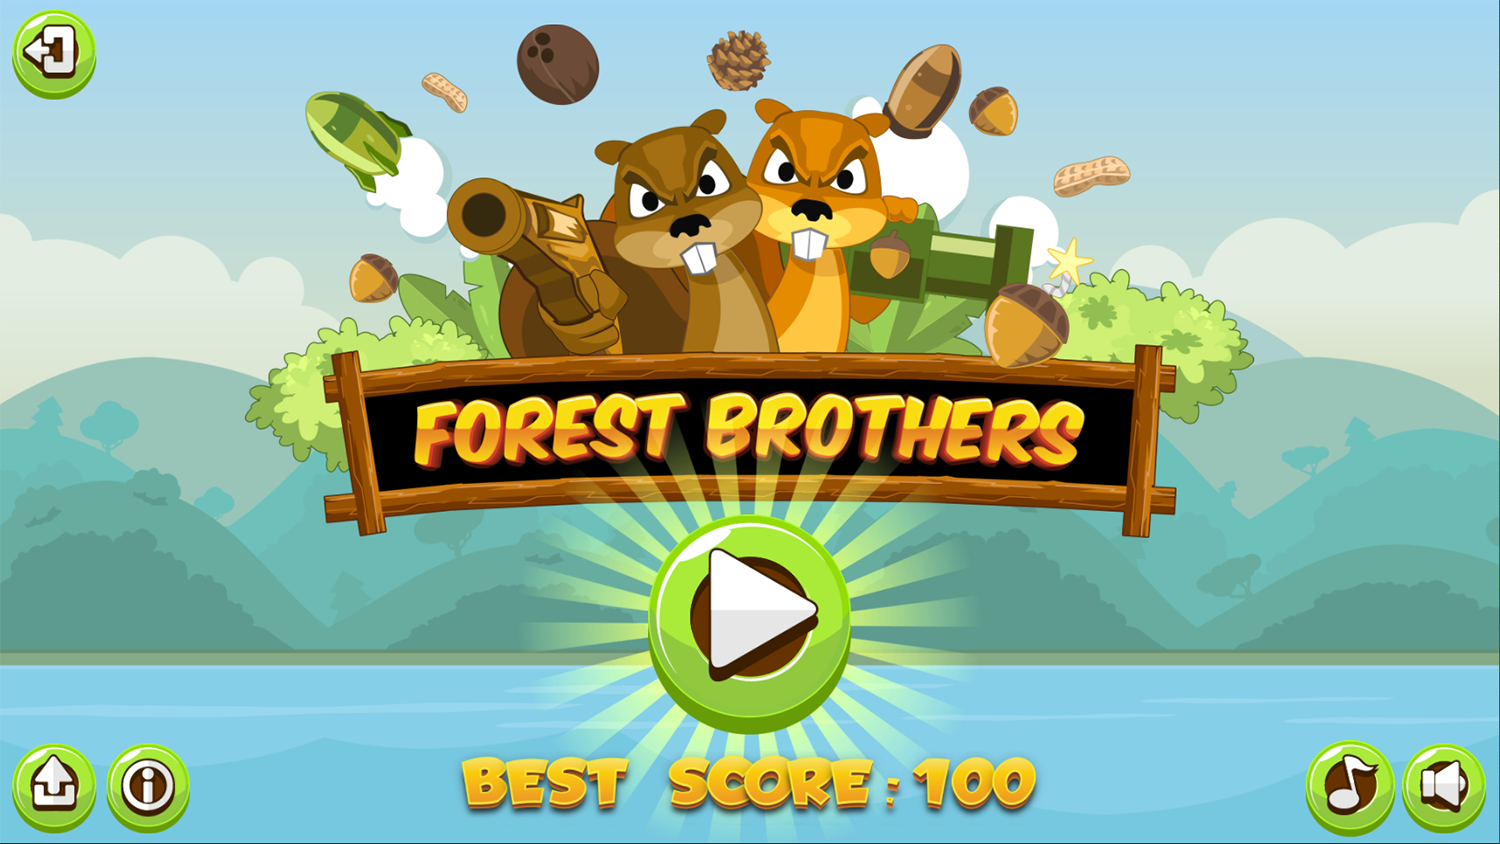 Forest Brothers Welcome Screen Screenshot.